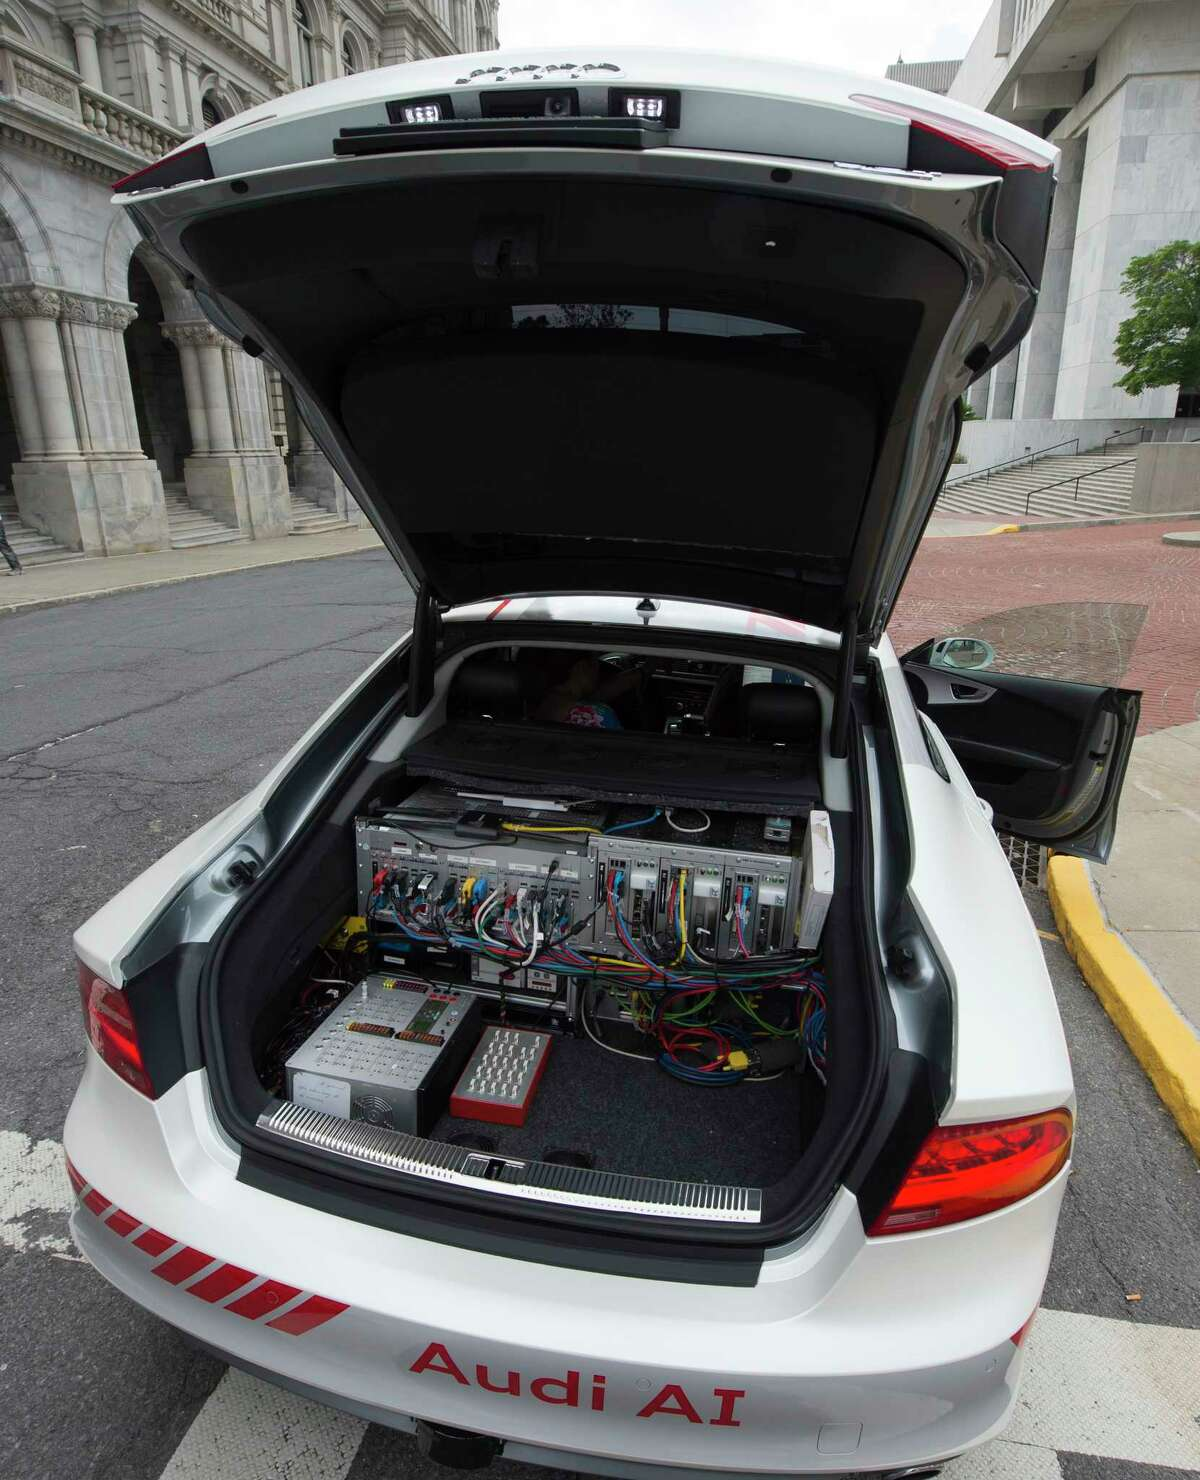 An Audi A-1 was on display and driven to demonstrate the new driverless technology at the State Capitol Tuesday June 13, 2017 at the State Capitol in Albany, N.Y. (Skip Dickstein/Times Union)